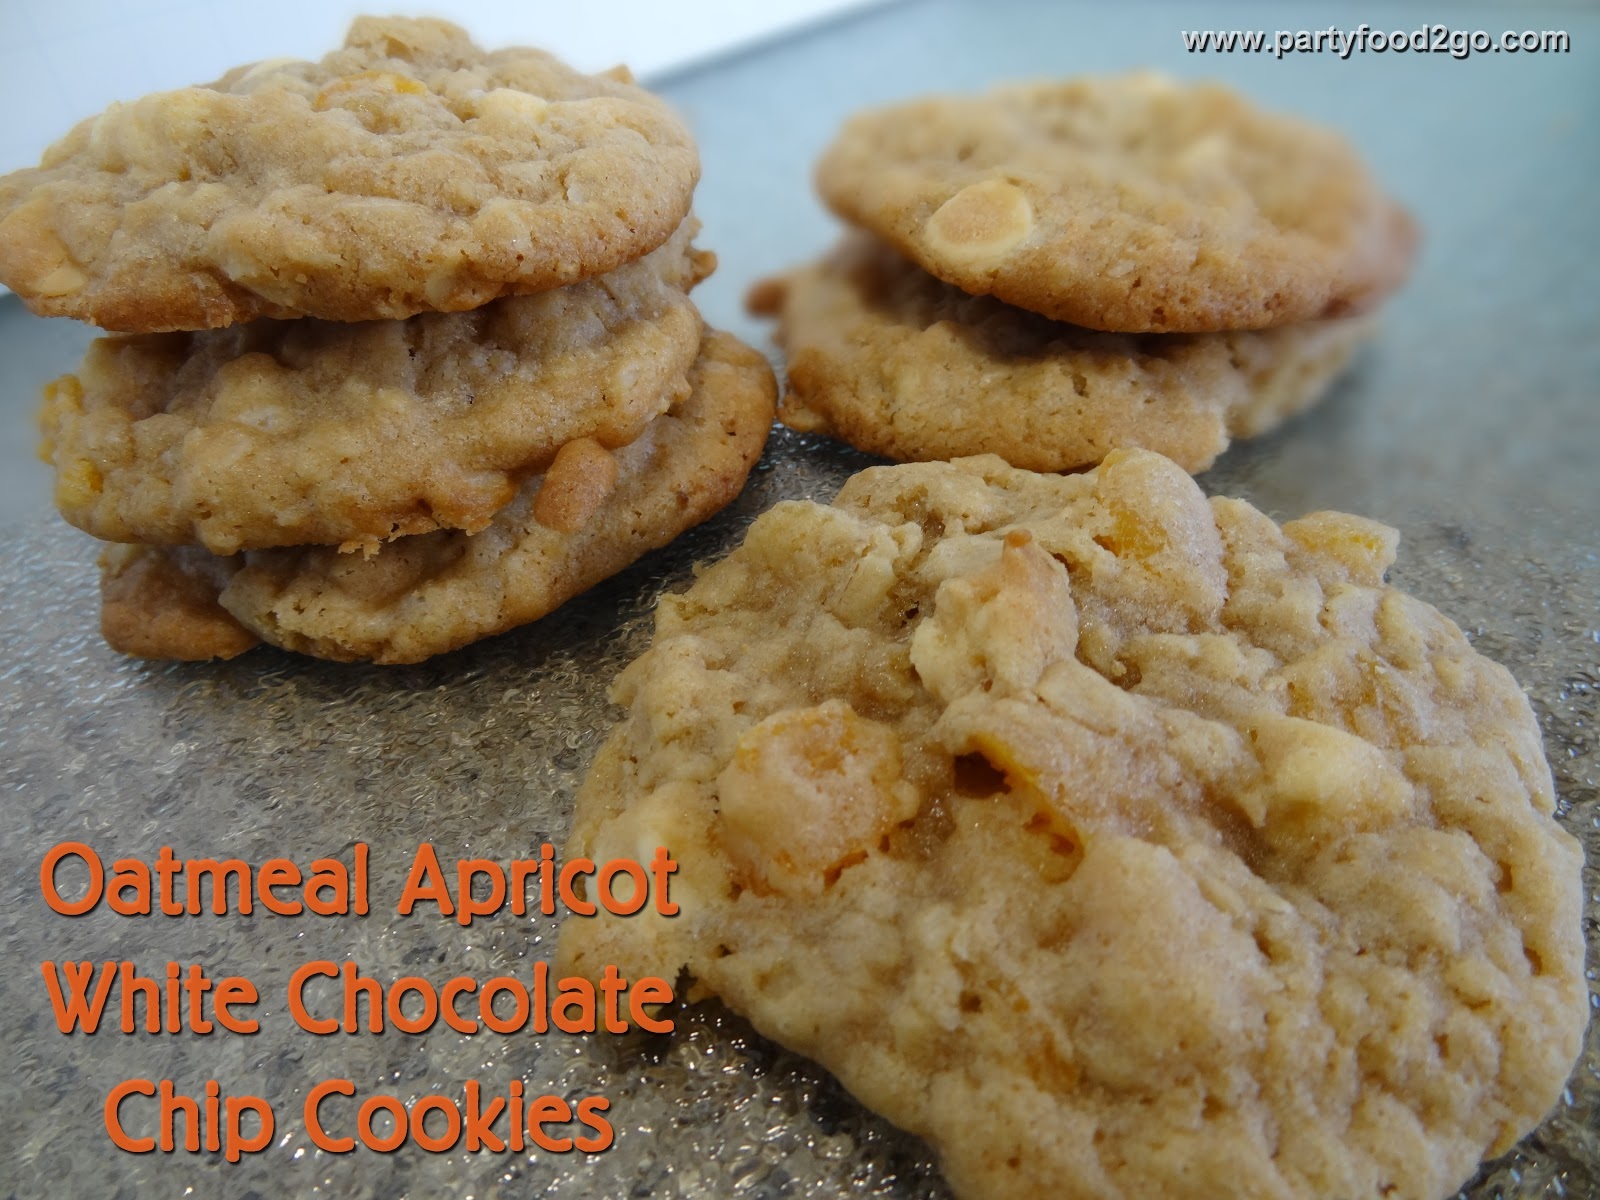 Oatmeal Apricot and White Chocolate Cookies